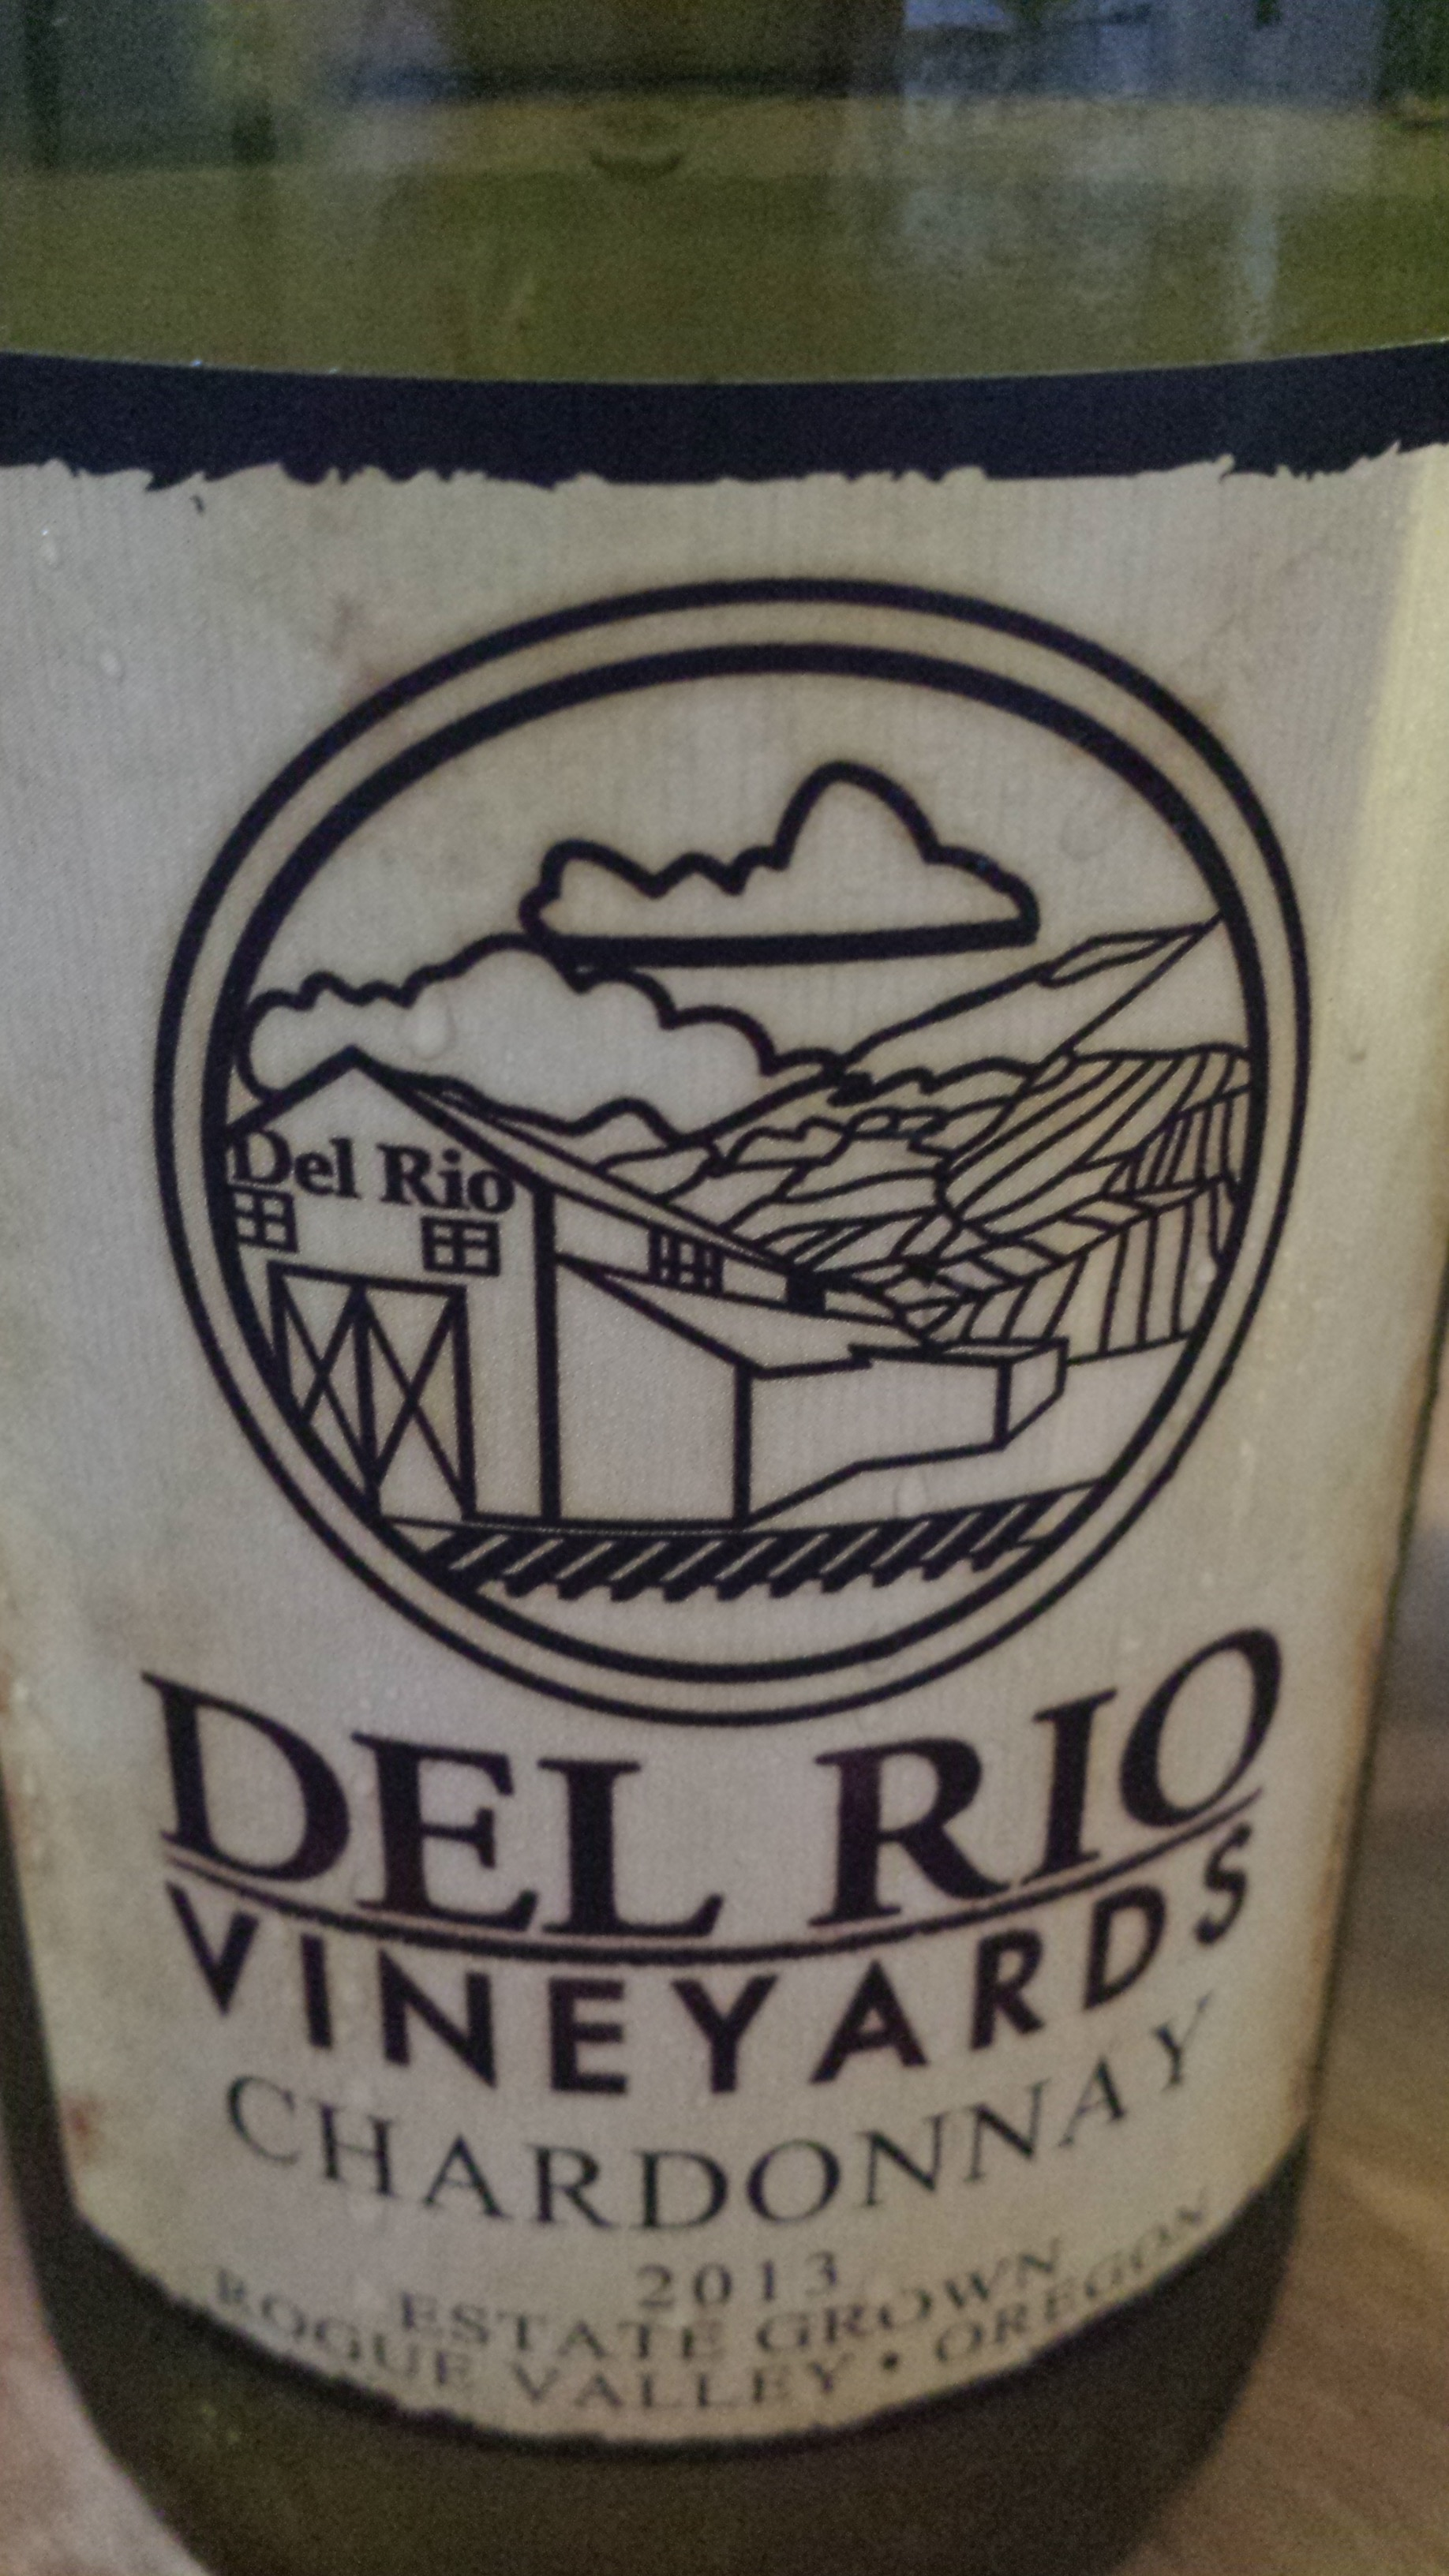 Del Rio Vineyards – Chardonnay 2013 – Estate Grown – Rogue Valley